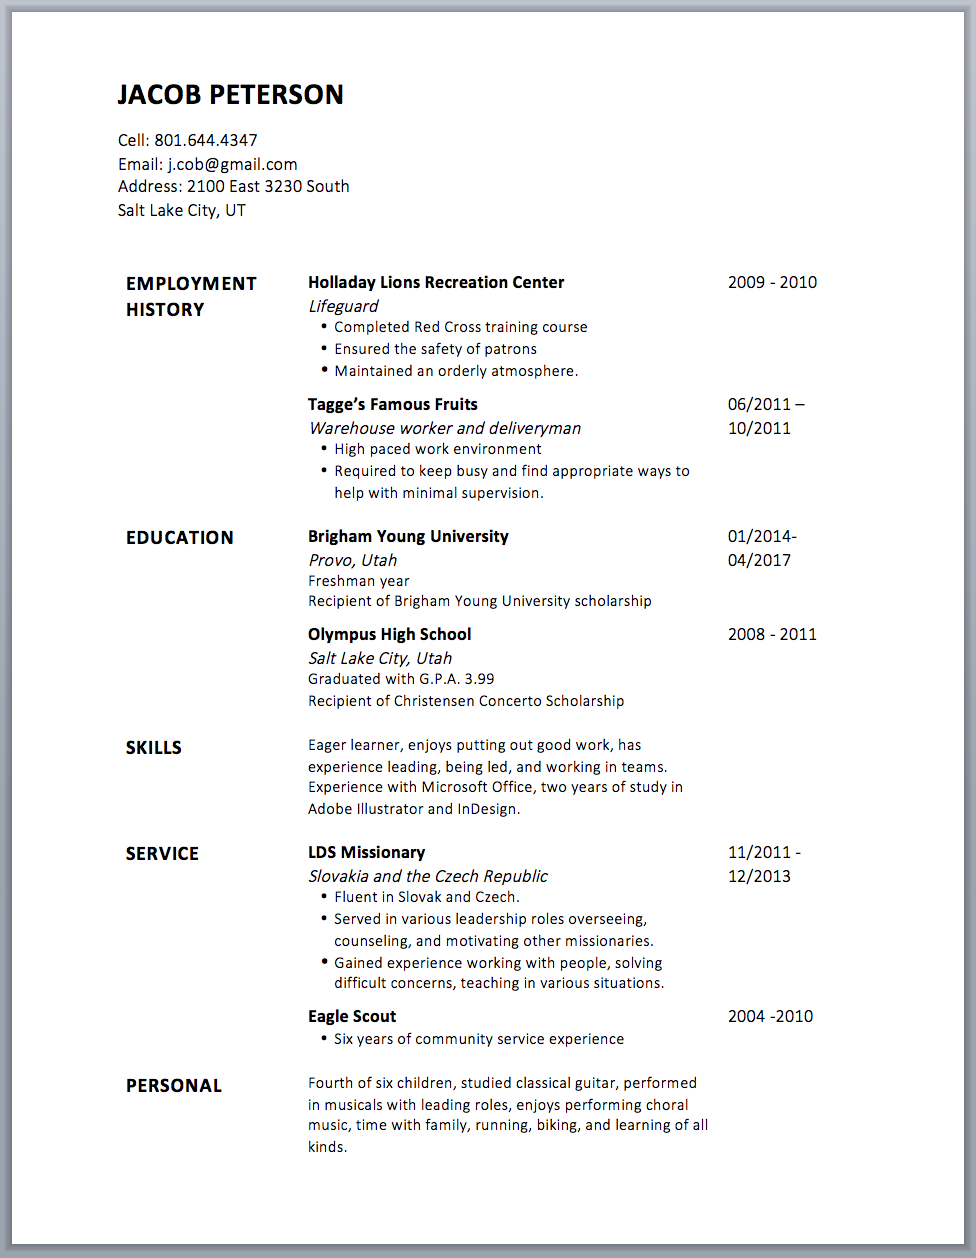 This is what the resume looks like without borders. Pretty nice, huh?